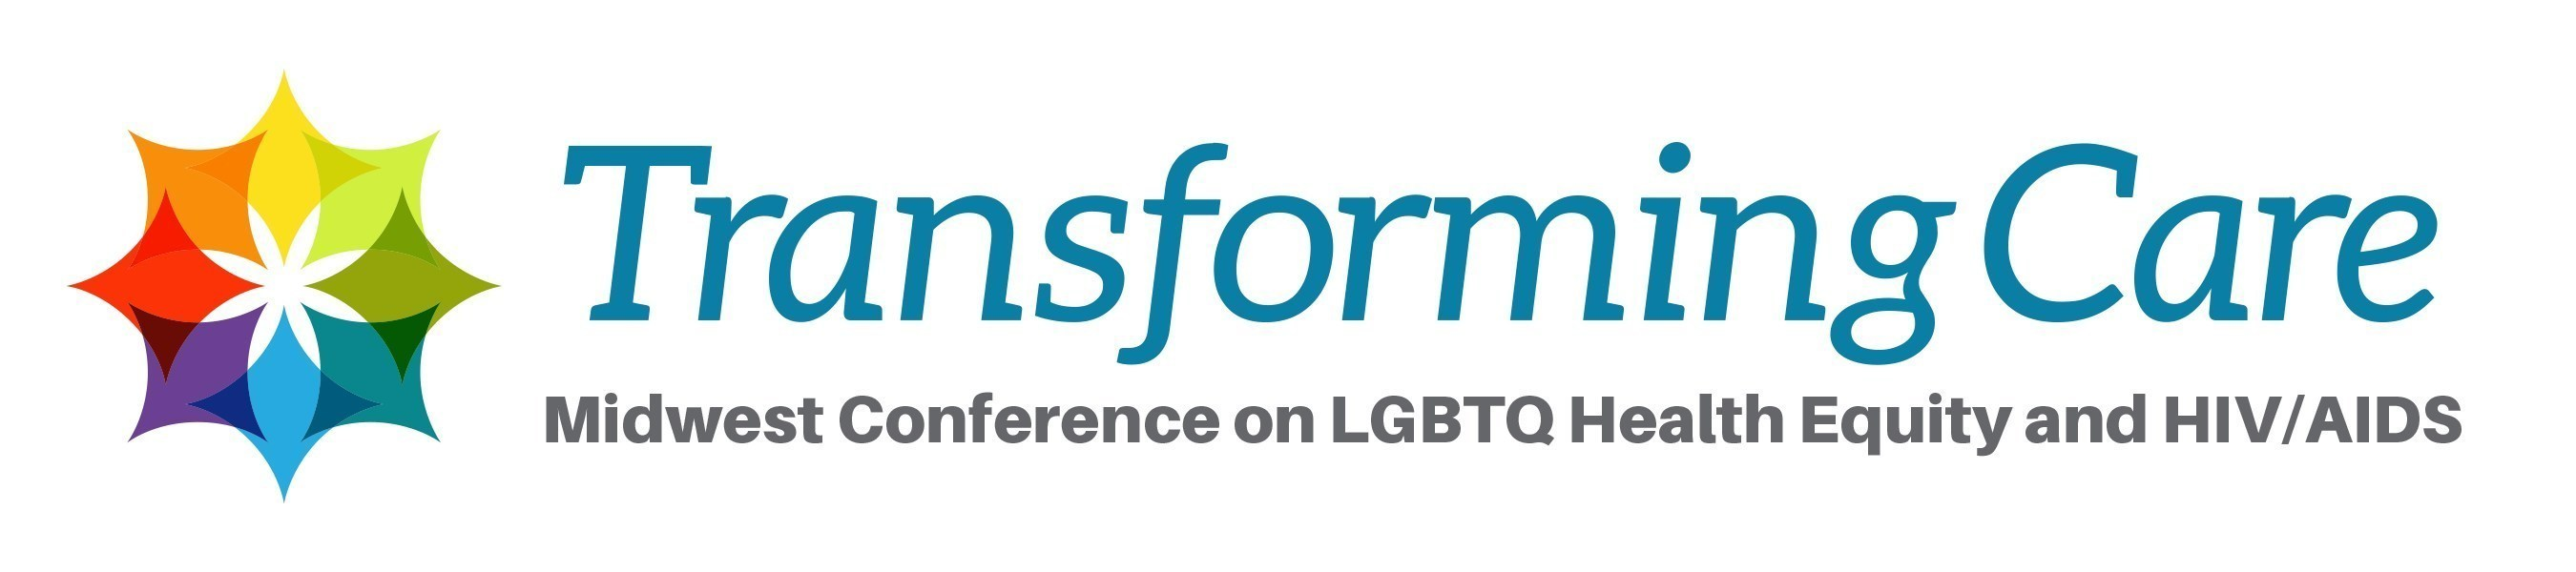 Transforming Care: Midwest Conference on LGBTQ Health Equity and HIV/AIDS brings together over 450 activists, academics, community members, health and social service professionals and others interested in reducing health disparities in the LGBTQ and HIV/AIDS community.